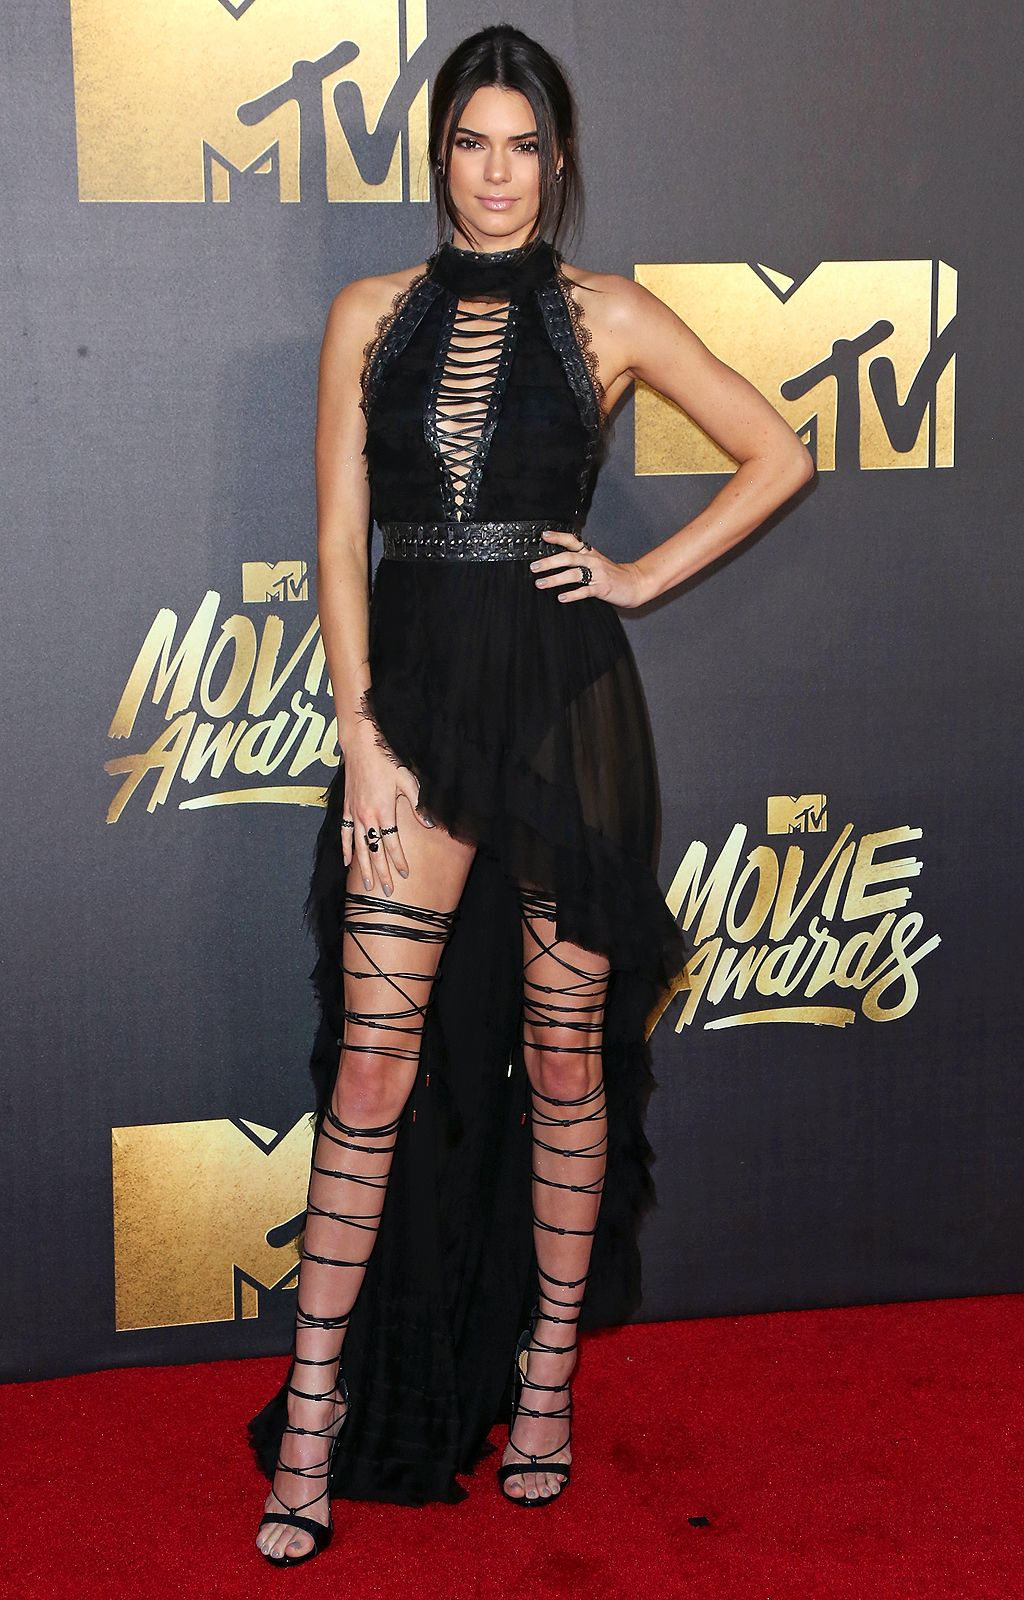 Kendall Jenner in a sheer black DSquared2 dress and lace-up sandals - click  through for more best dressed from the MTV Movie Awards 3ac9b3dd4